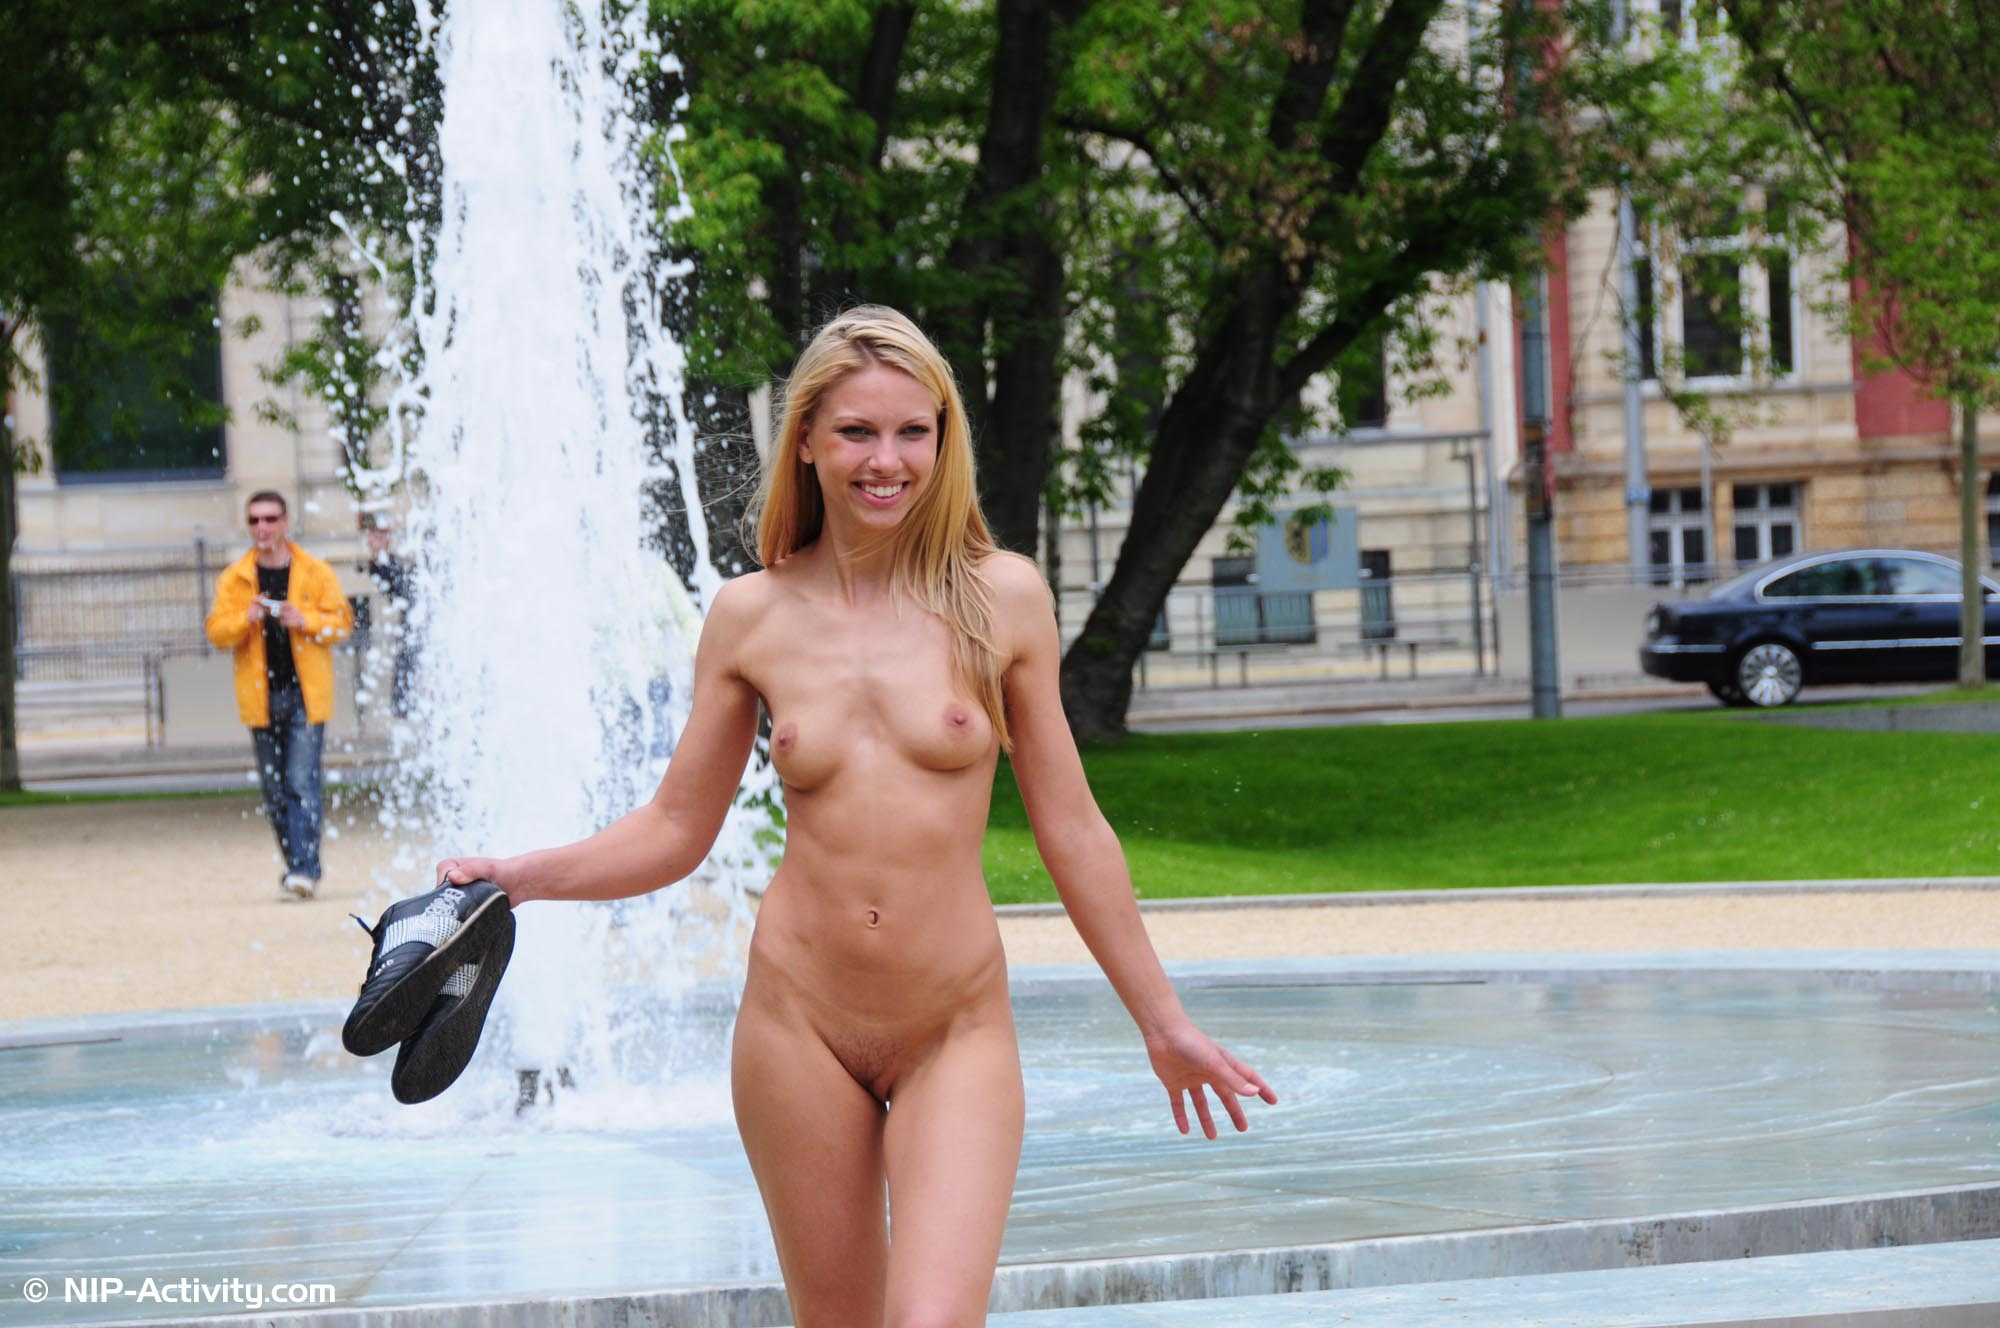 Nude In Public Movies